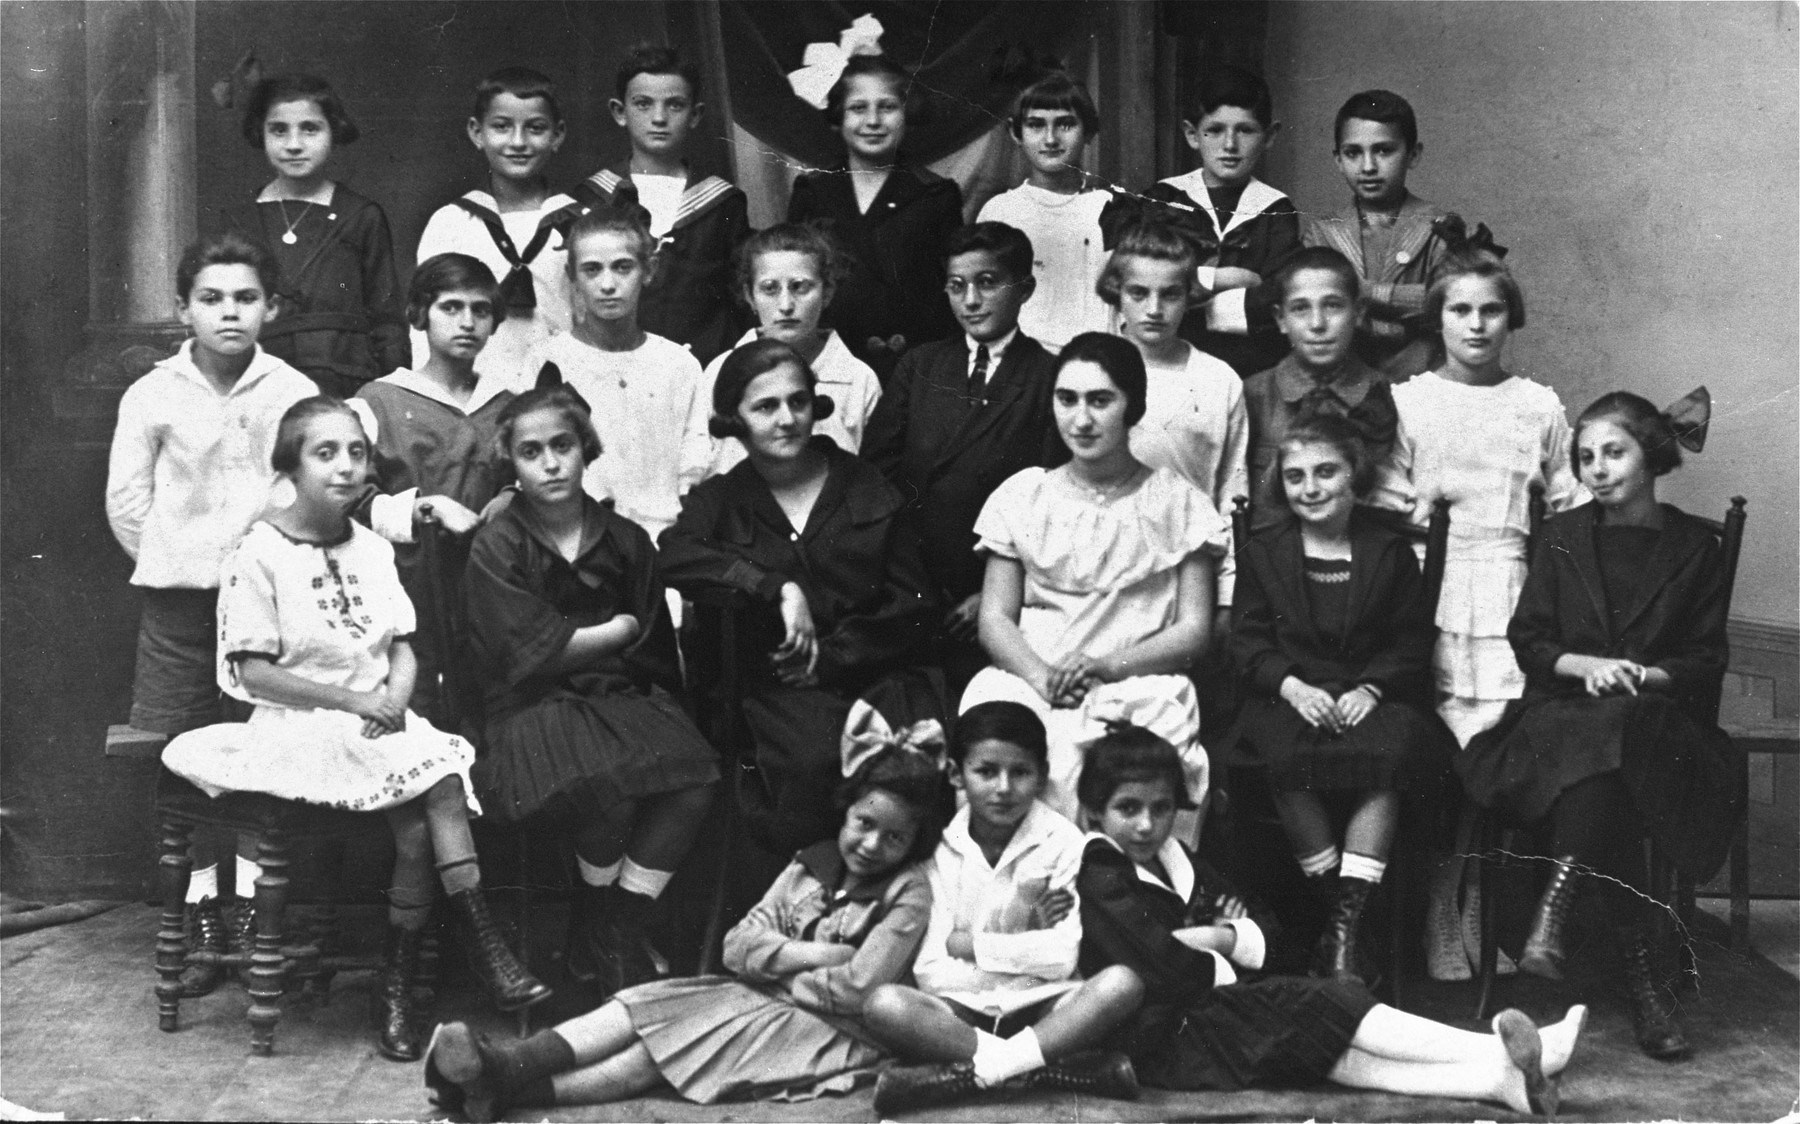 Group portrait of the members of a Zionist youth group in Pozega, Croatia.  Among those pictured is Bruno Klein (top row, second from the left), the uncle of the donor.